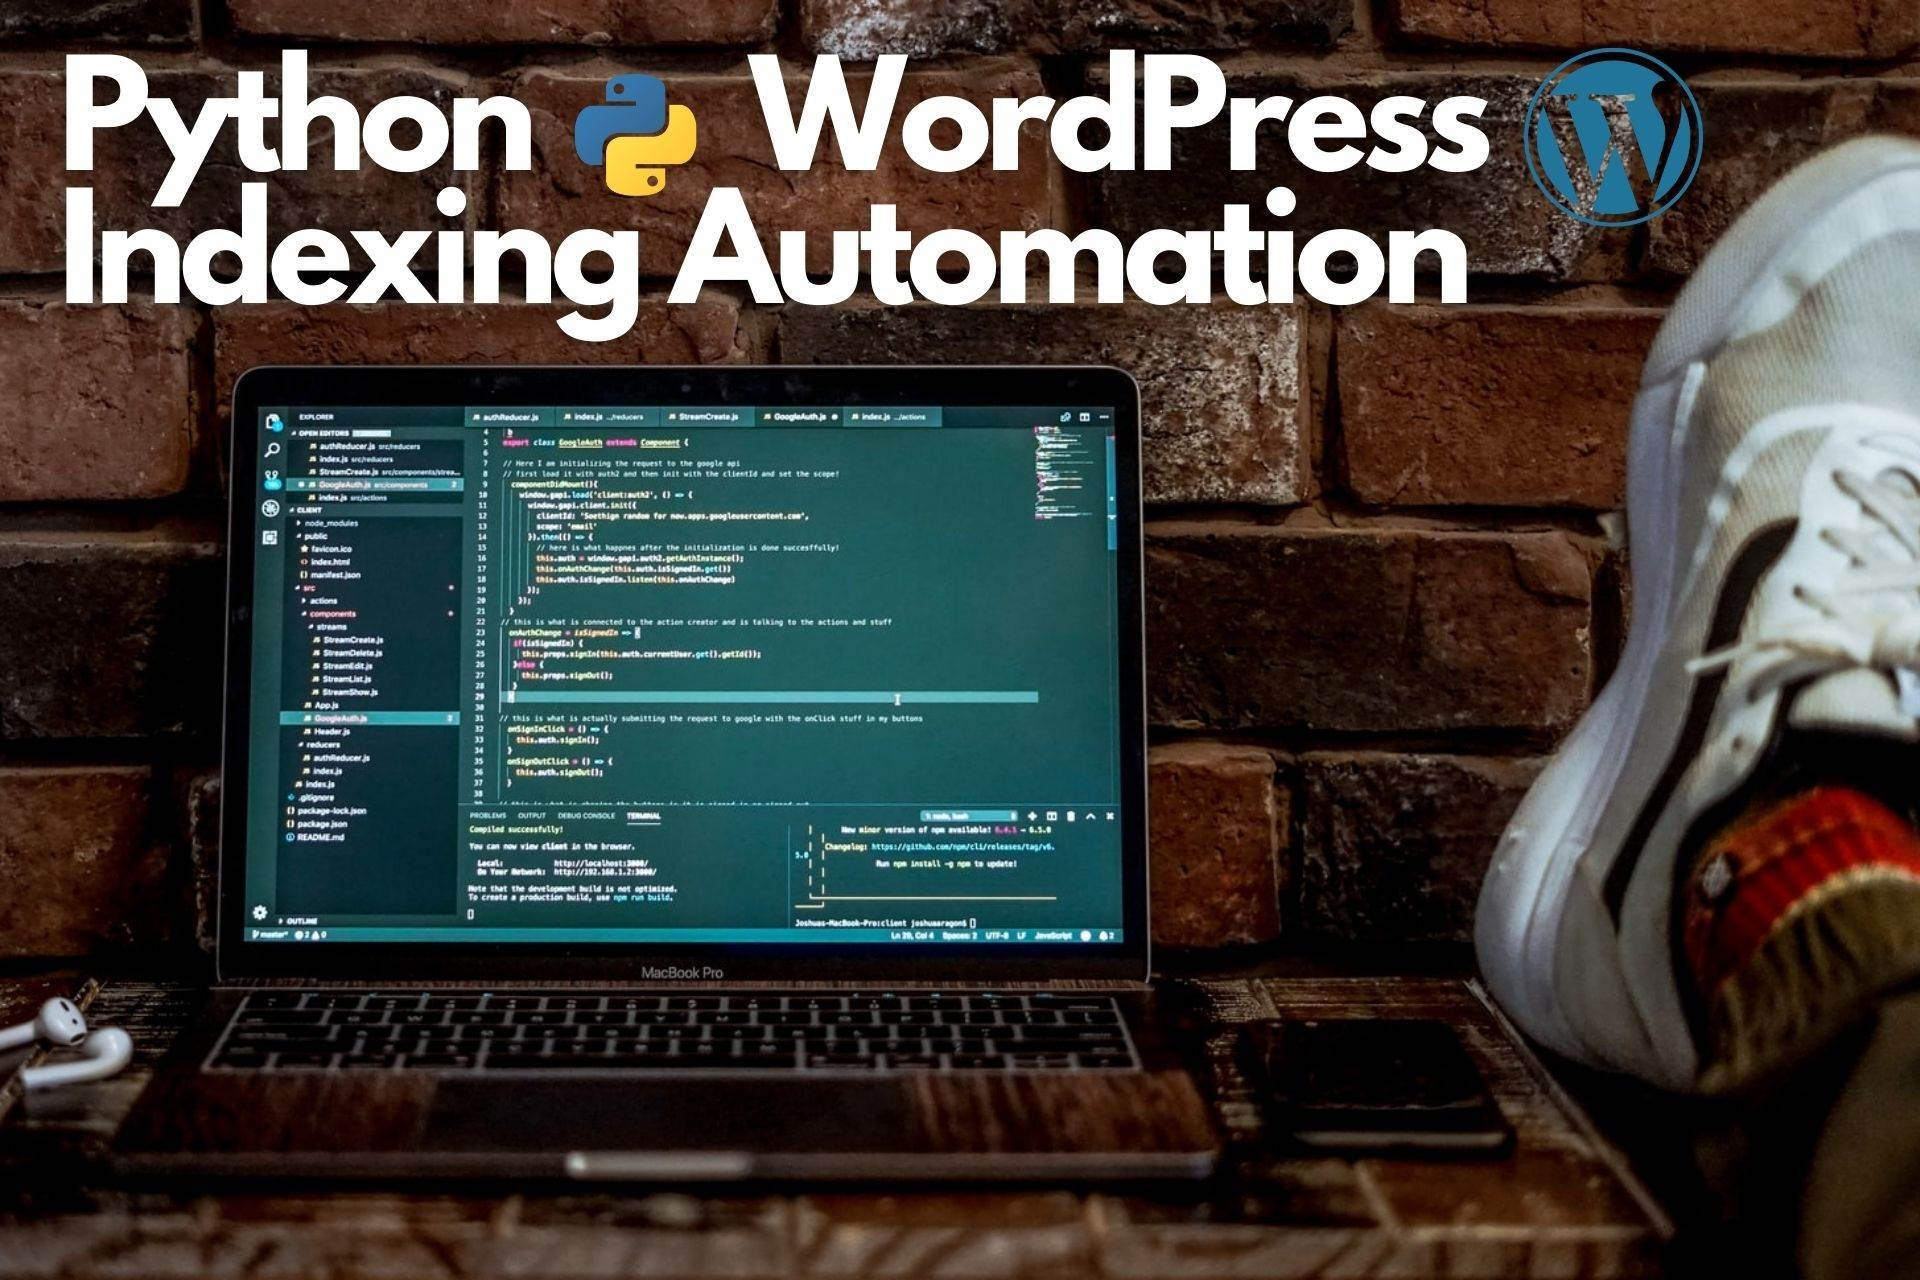 Automate Your SEO Indexing Strategy With Python and WordPress